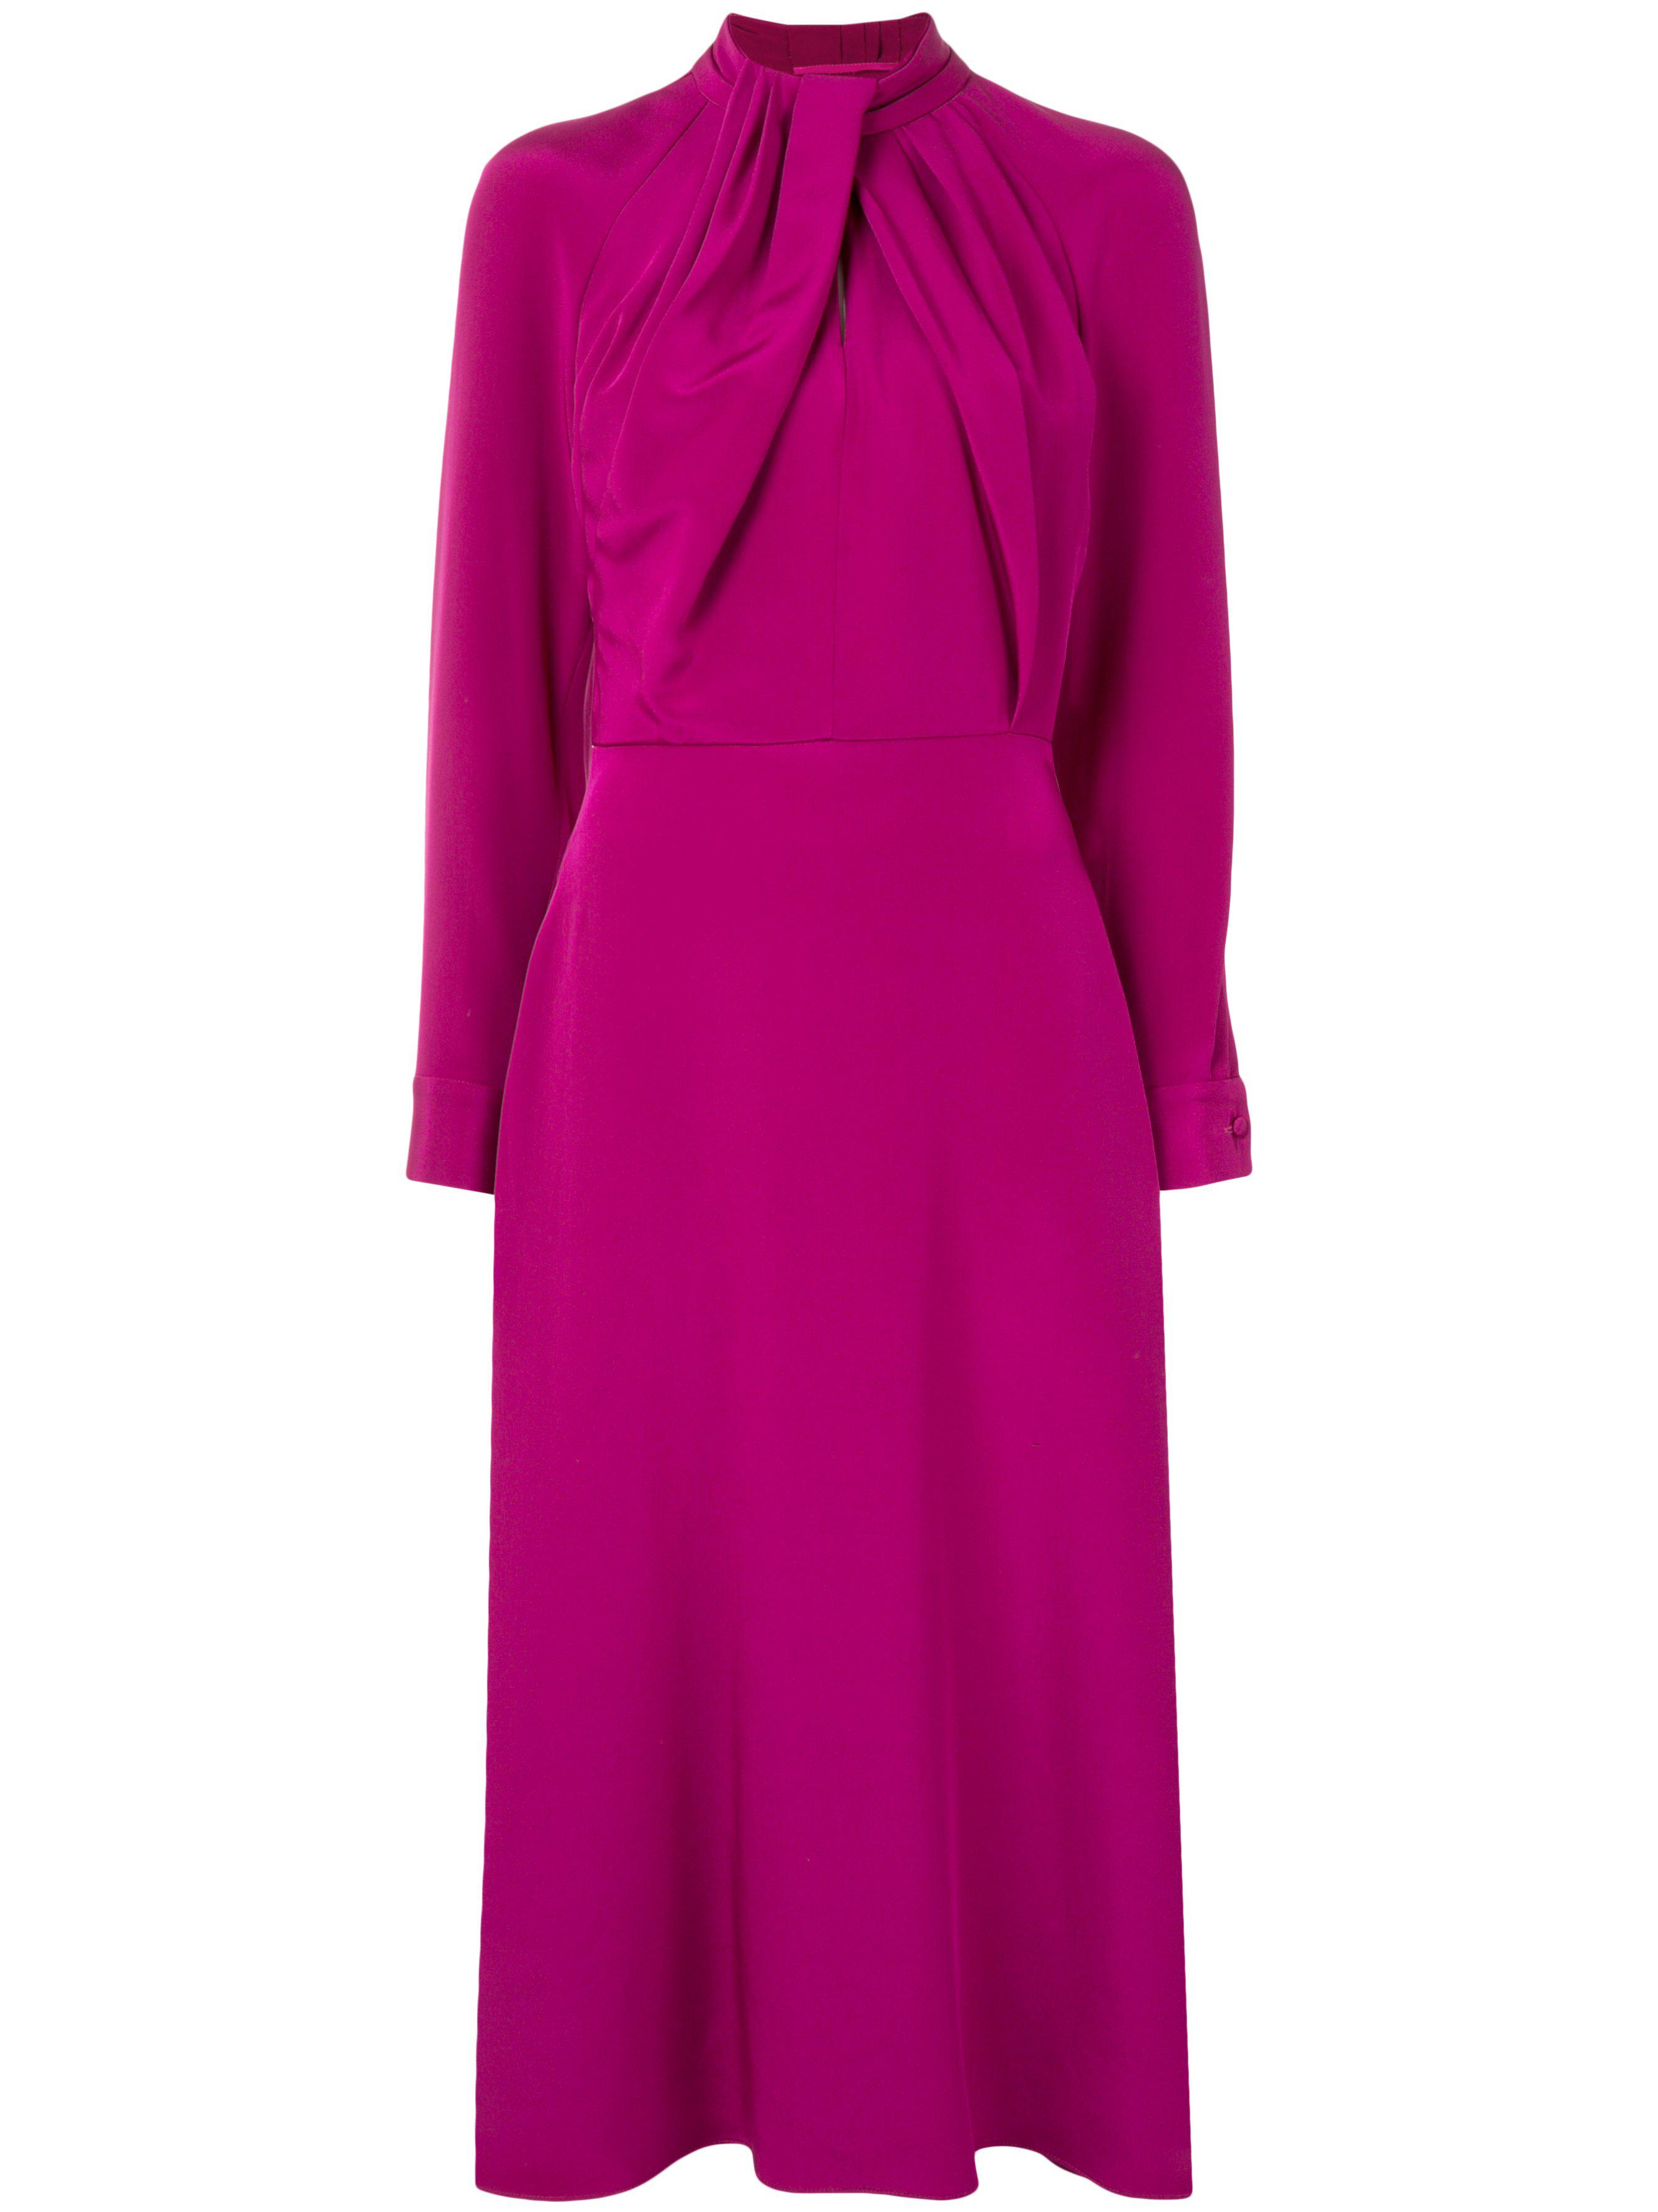 LONG SLEEVE DRESS WITH NECK TWIST IN SILK CREPE 1